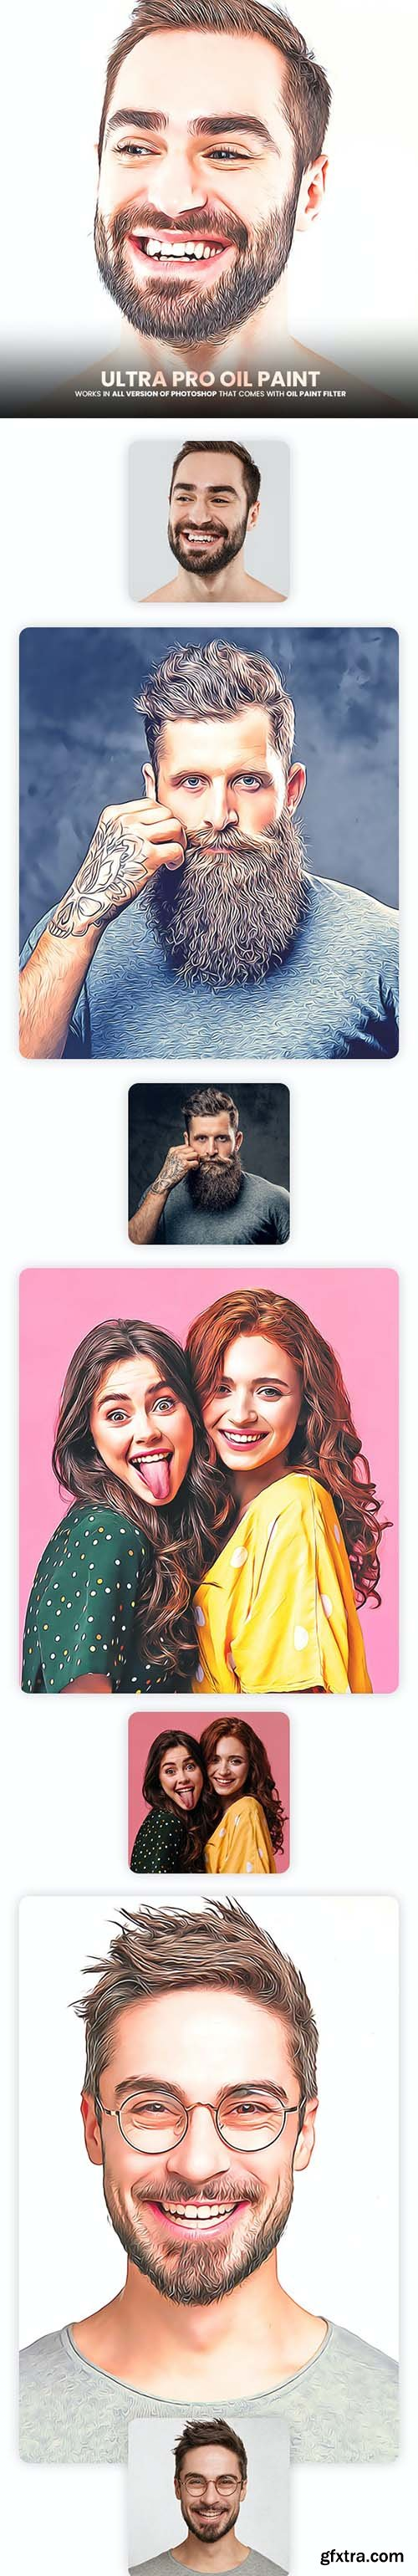 GraphicRiver - Ultra Pro Oil Paint 30398638